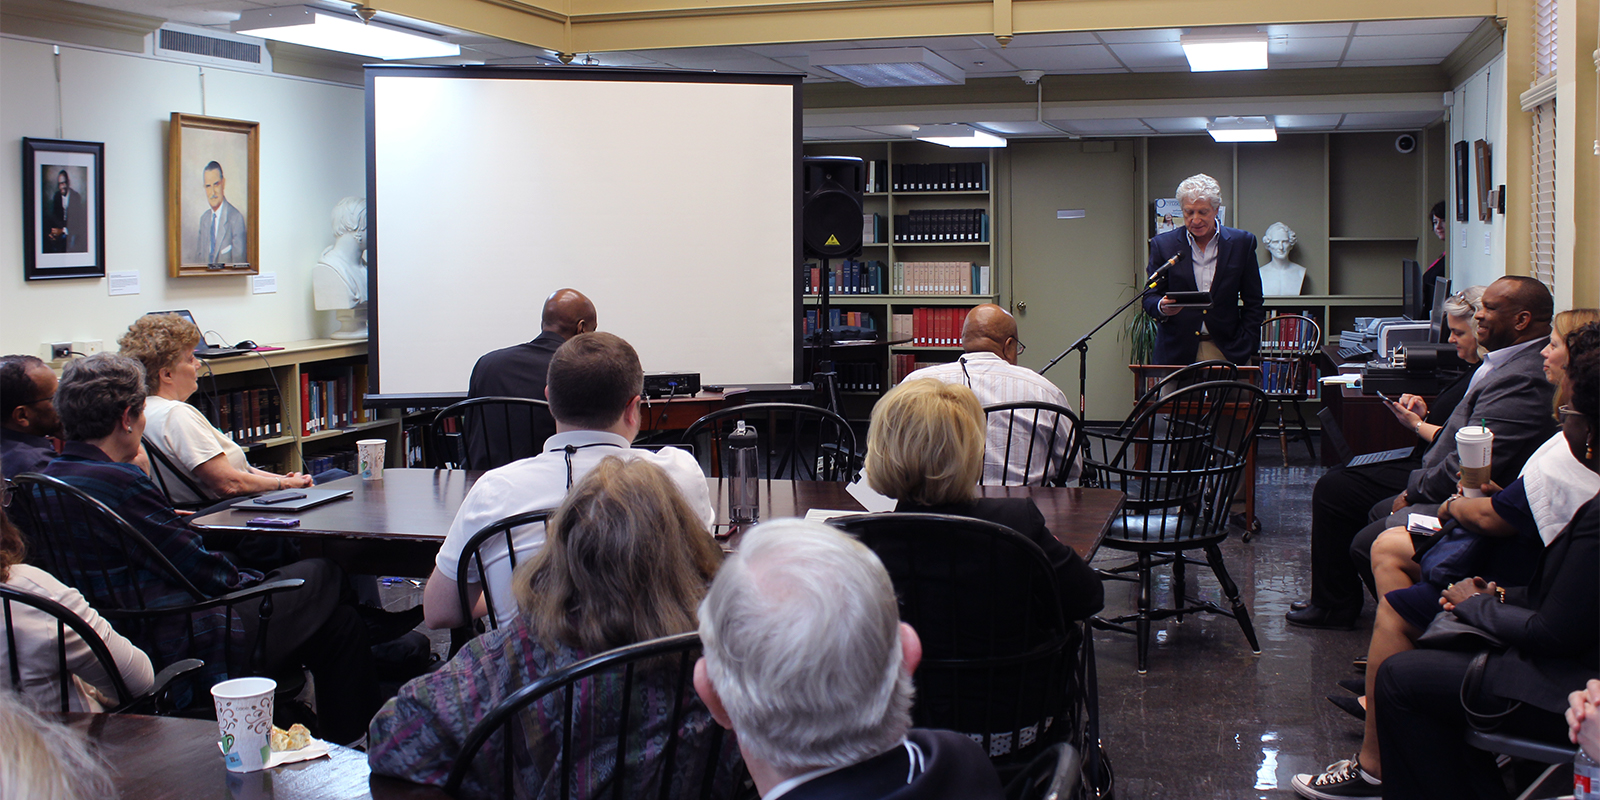 George Abdo, chair of the Presbyterian Historical Society board, speaks to the COGA and PHS Board members at their joint meeting at PHS offices in Philadelphia. Photo by Rick Jones